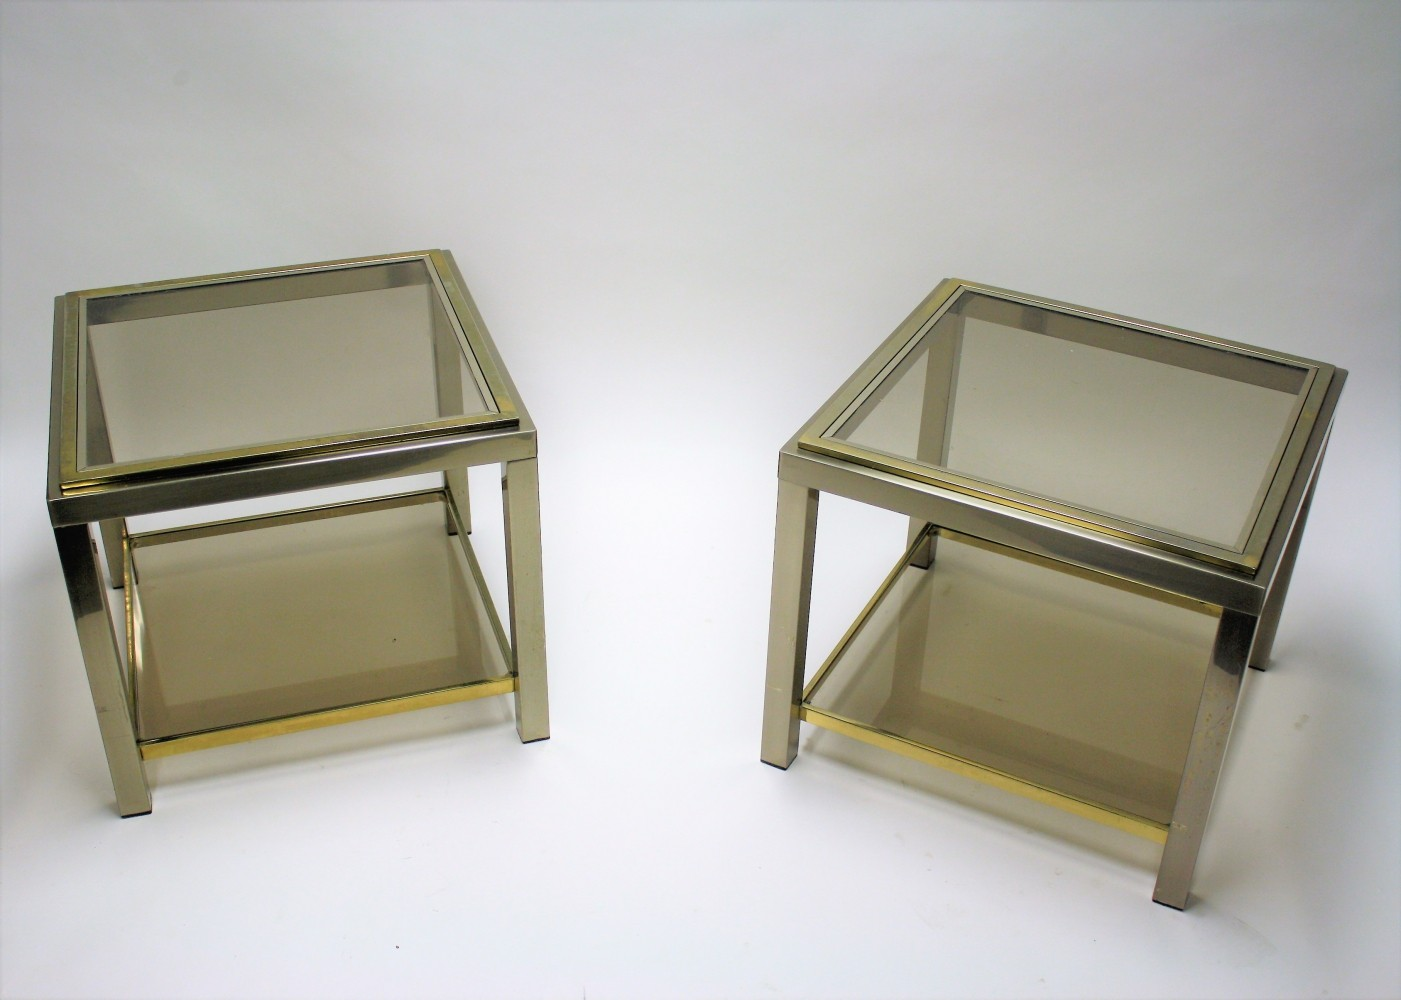 Pair of side tables by Jean Charles, 1970s